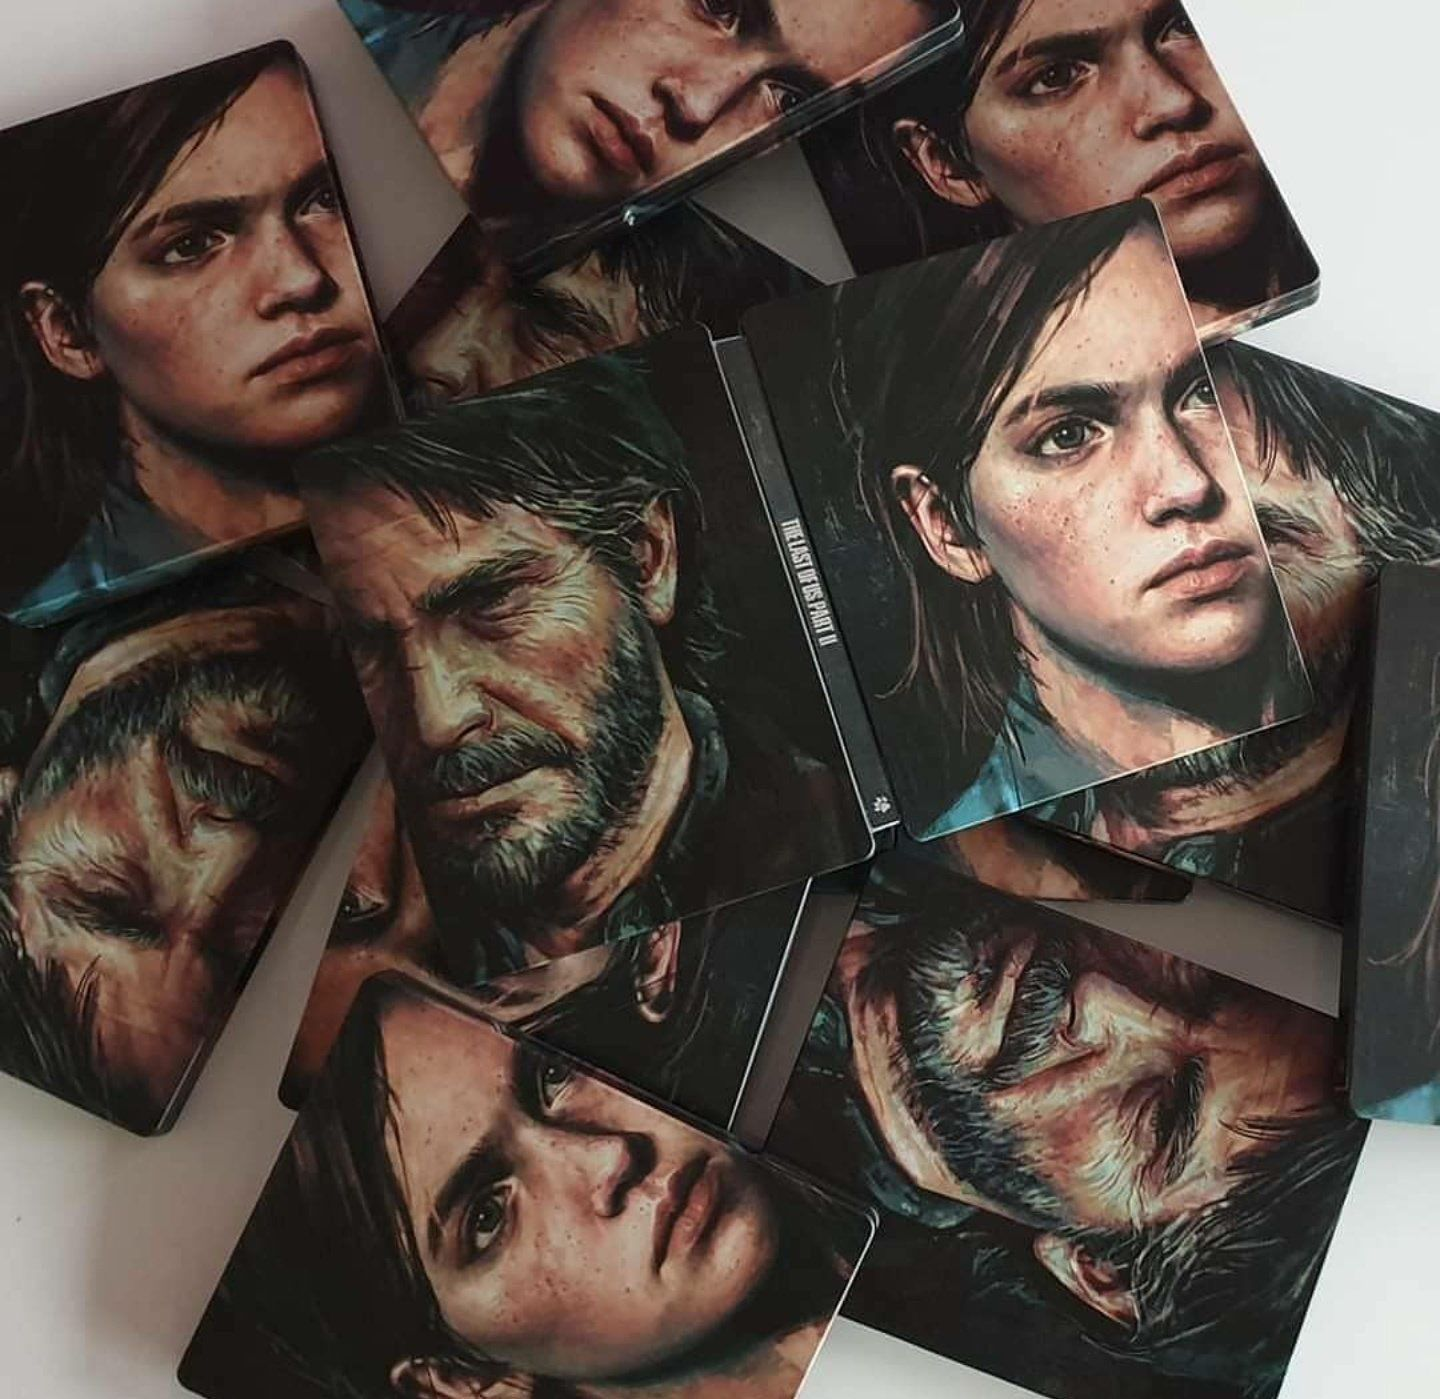 The Last Of Us Part 2 European Steelbook Artwork Is Exceptionally